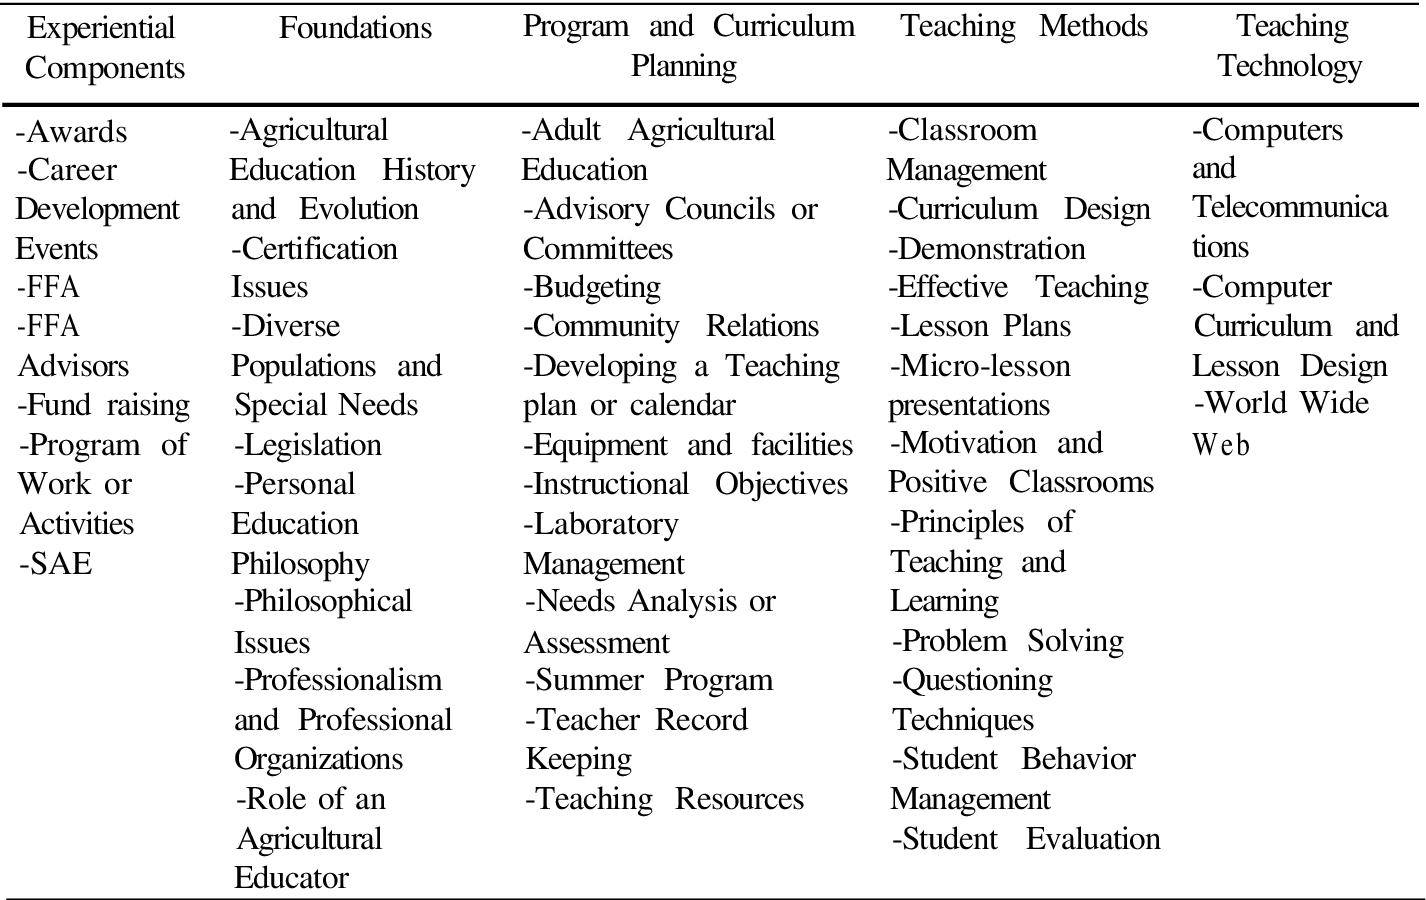 AN EXAMINATION OF SELECTED PRESERVICE AGRICULTURAL TEACHER EDUCATION